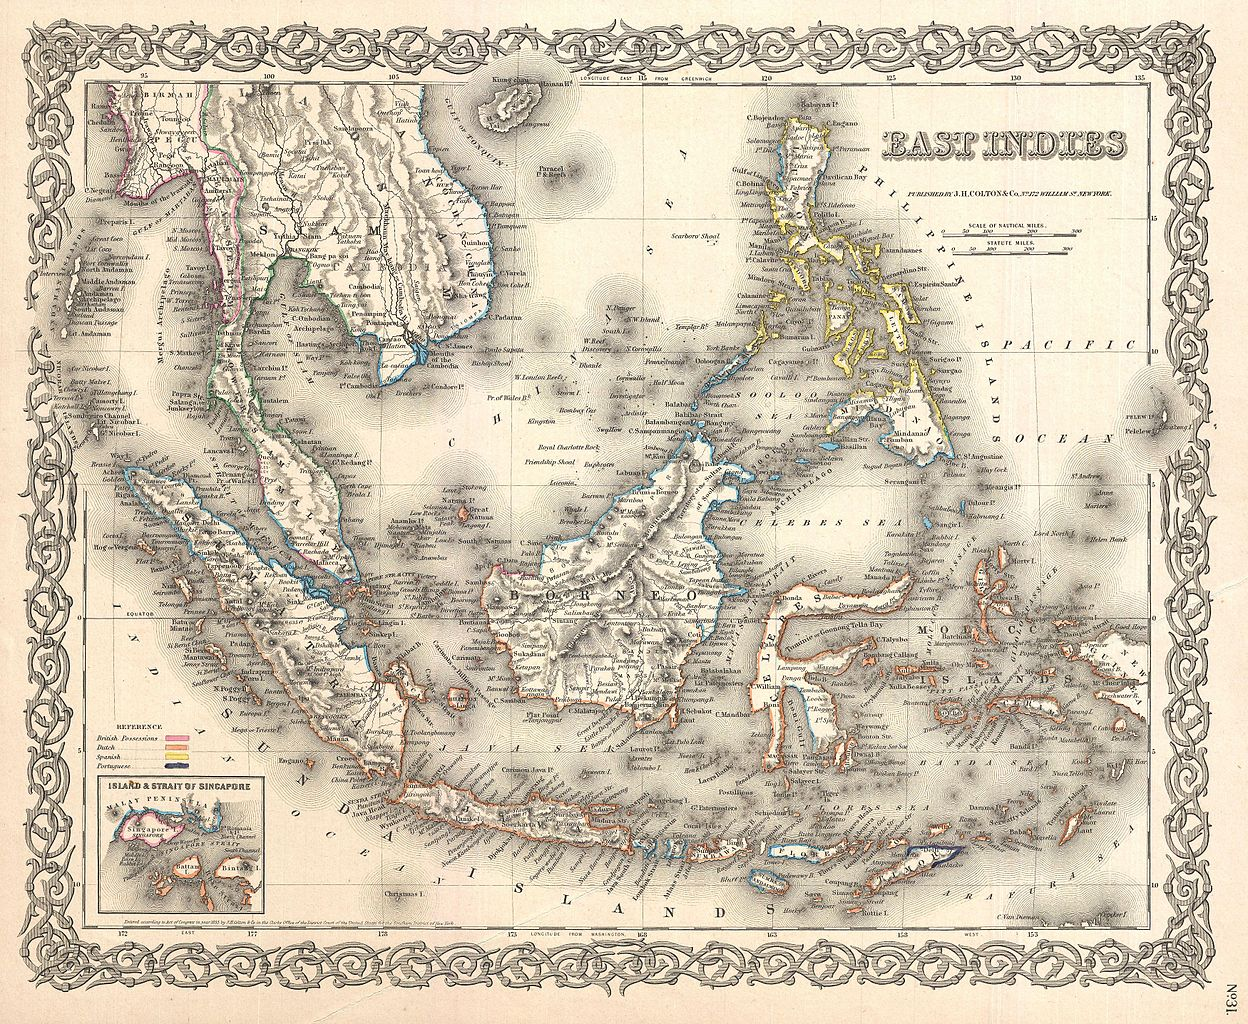 La Family Indonesia Tempo Doeloe 1855 Peta Dekoratif East Indies